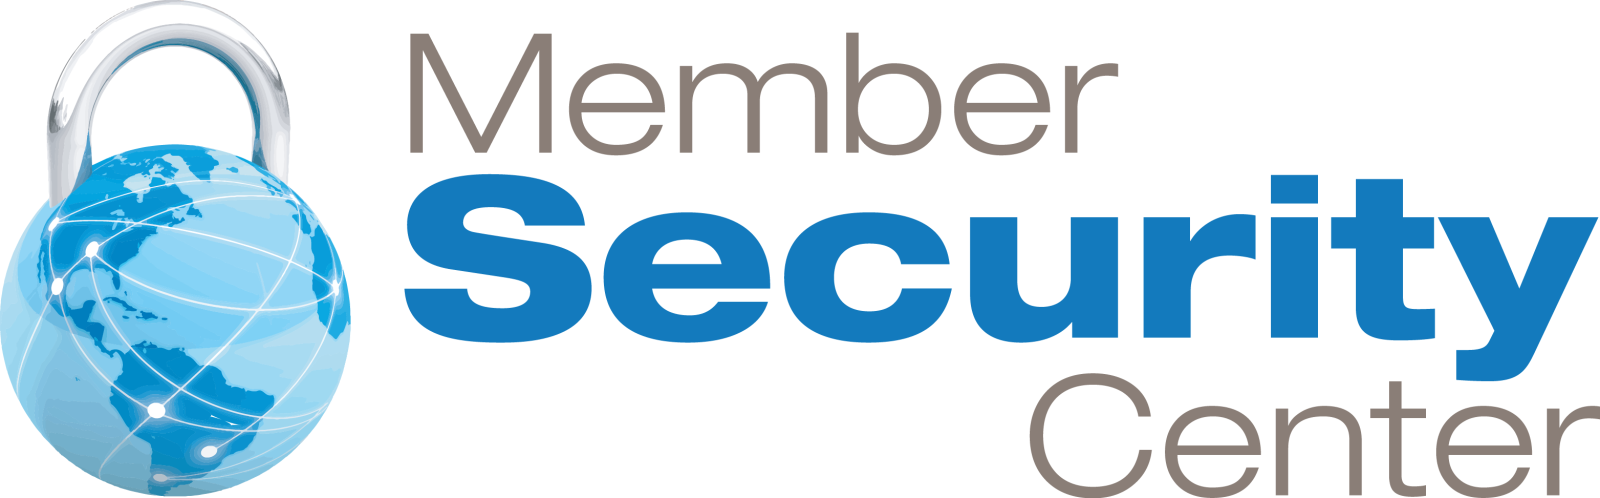 Member Security Center